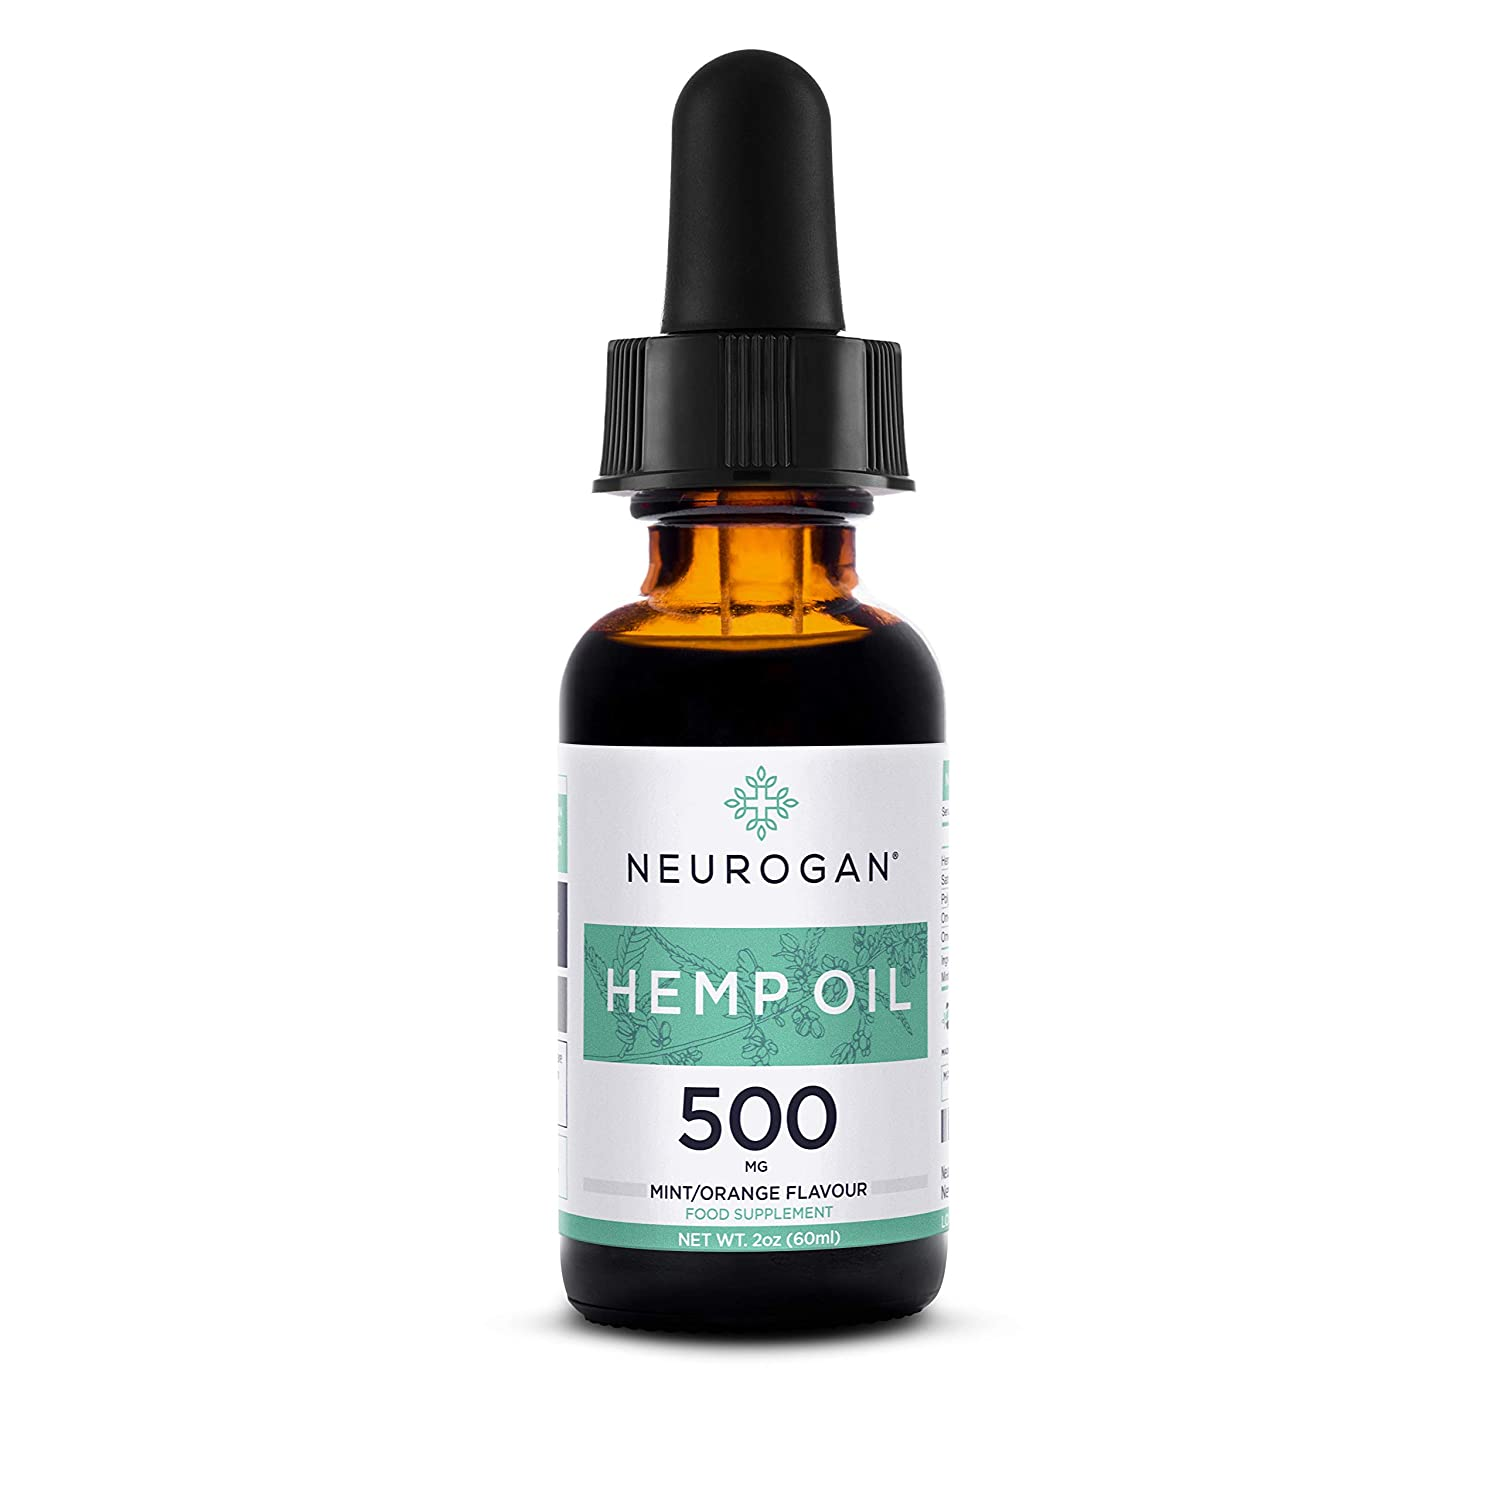 Neurogan Hemp Oil Drops 500mg 30ml | 100% Pure Natural Ingredients Full Spectrum Co2 Extracted | Anti-inflammatory | Help Reduce Stress, Anxiety and Pain | Vegan & Vegetarian Friendly Neurogan Labs